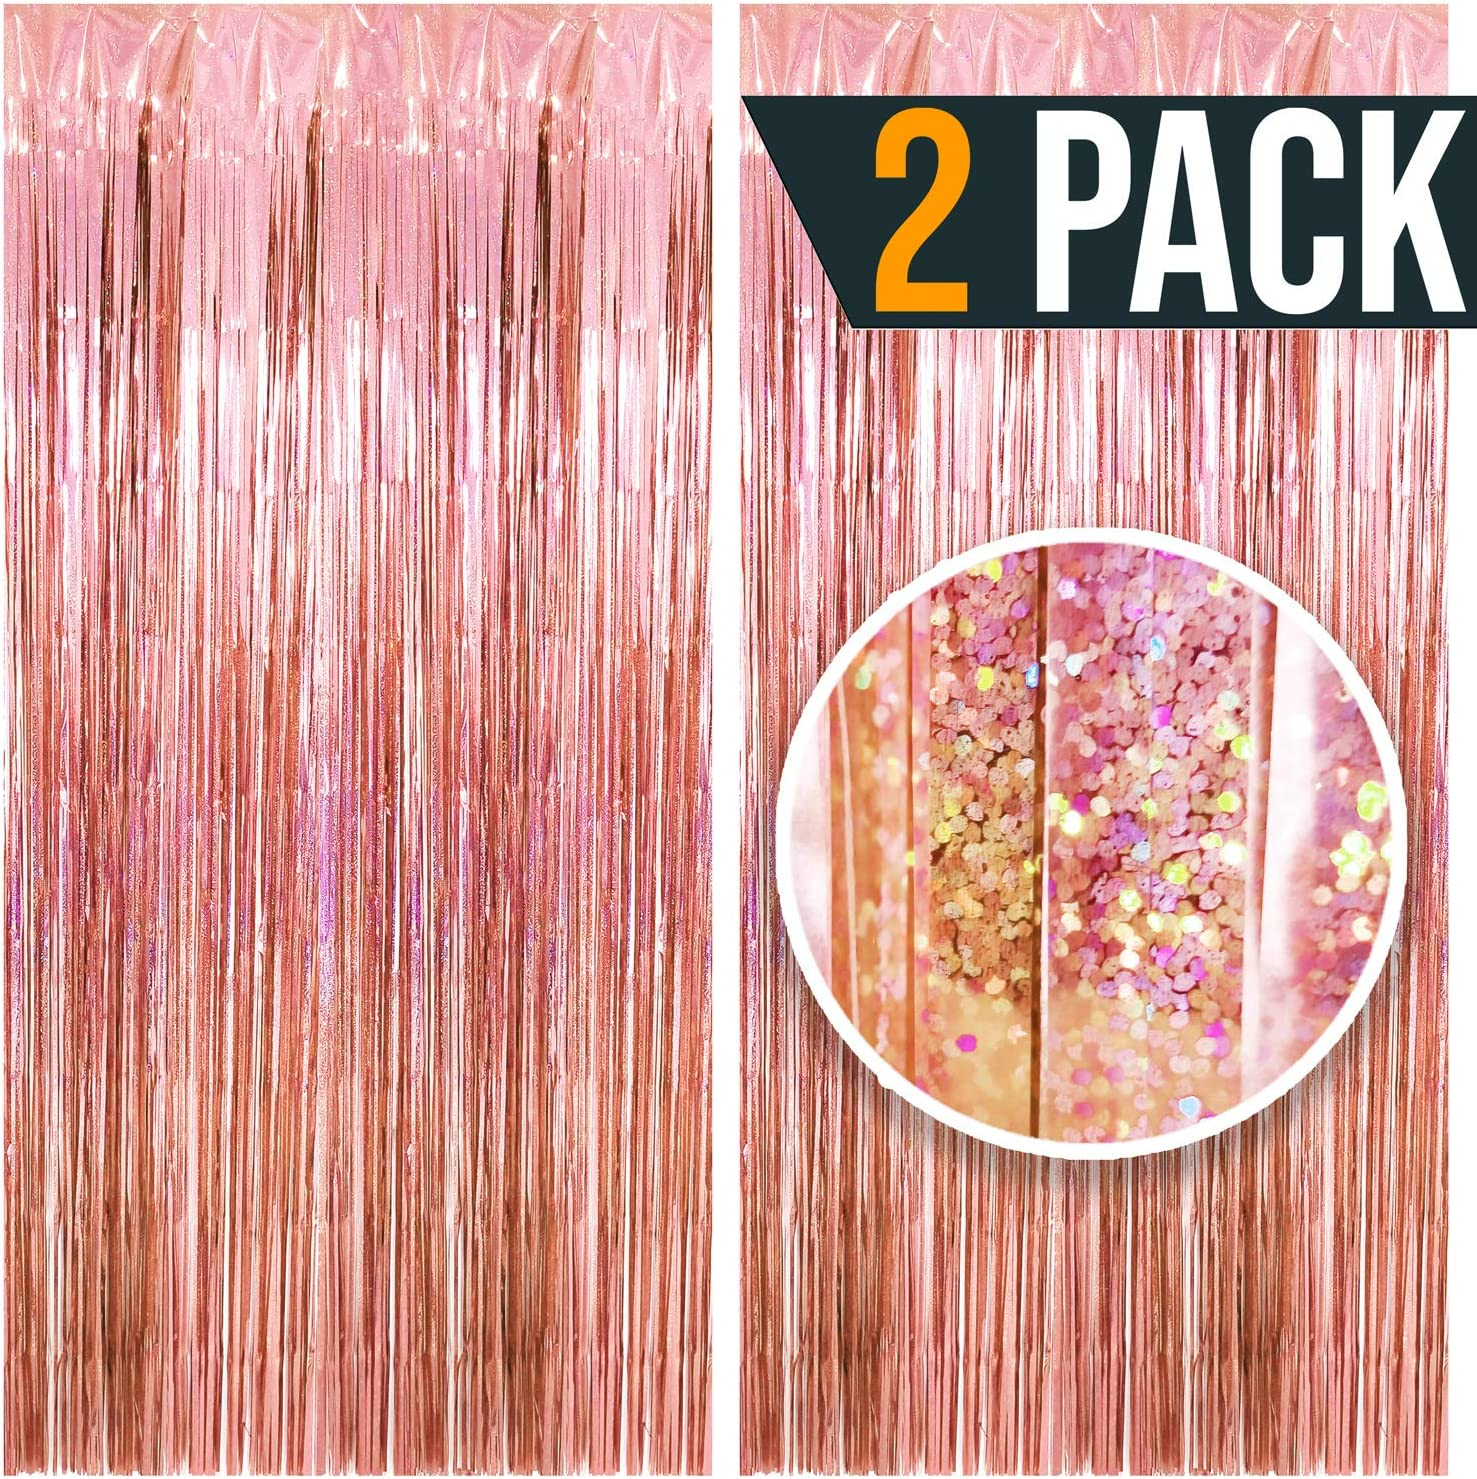 3.25 x 6.7 ft (2 Pack) Tinsel Foil Fringe Curtains Party Decorations Photo Booth Backdrop | Wedding Décor Baby Shower Graduations Valentine day Bachelorette Birthday Decorations (Blush Pink (Sparkly))